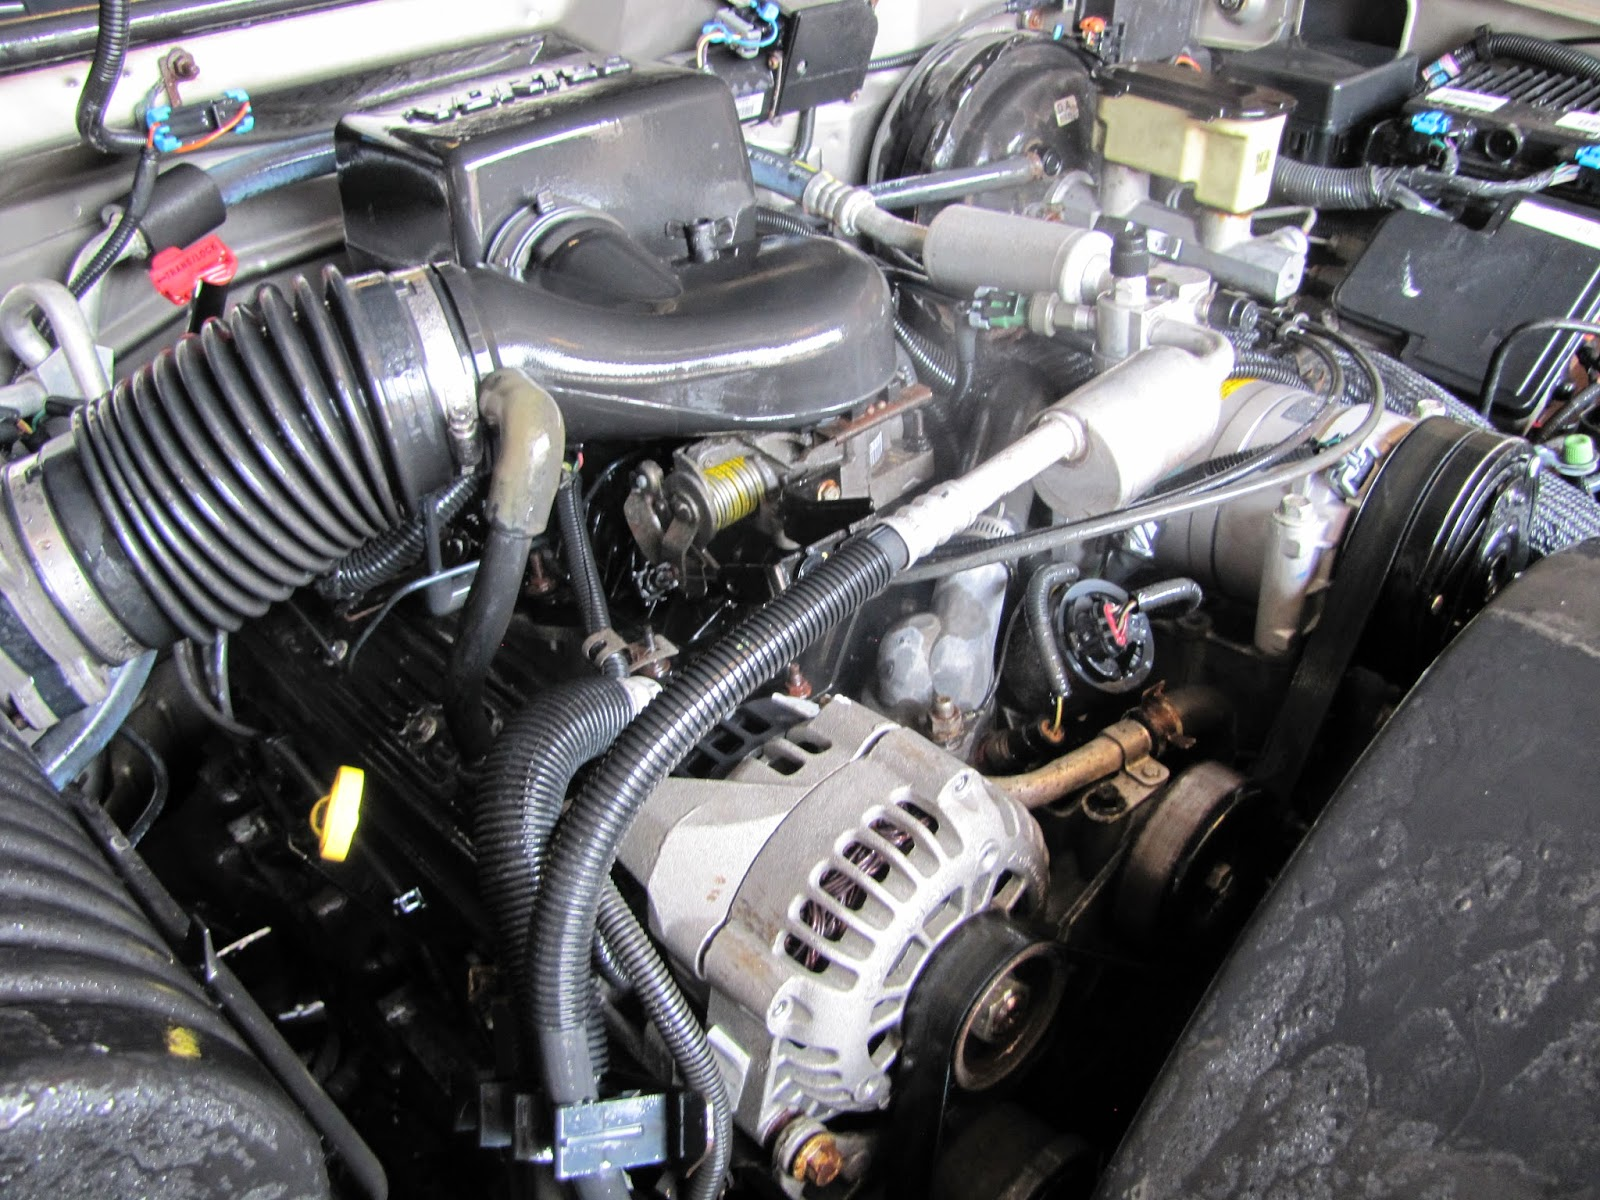 Clean engine with Genesis 950